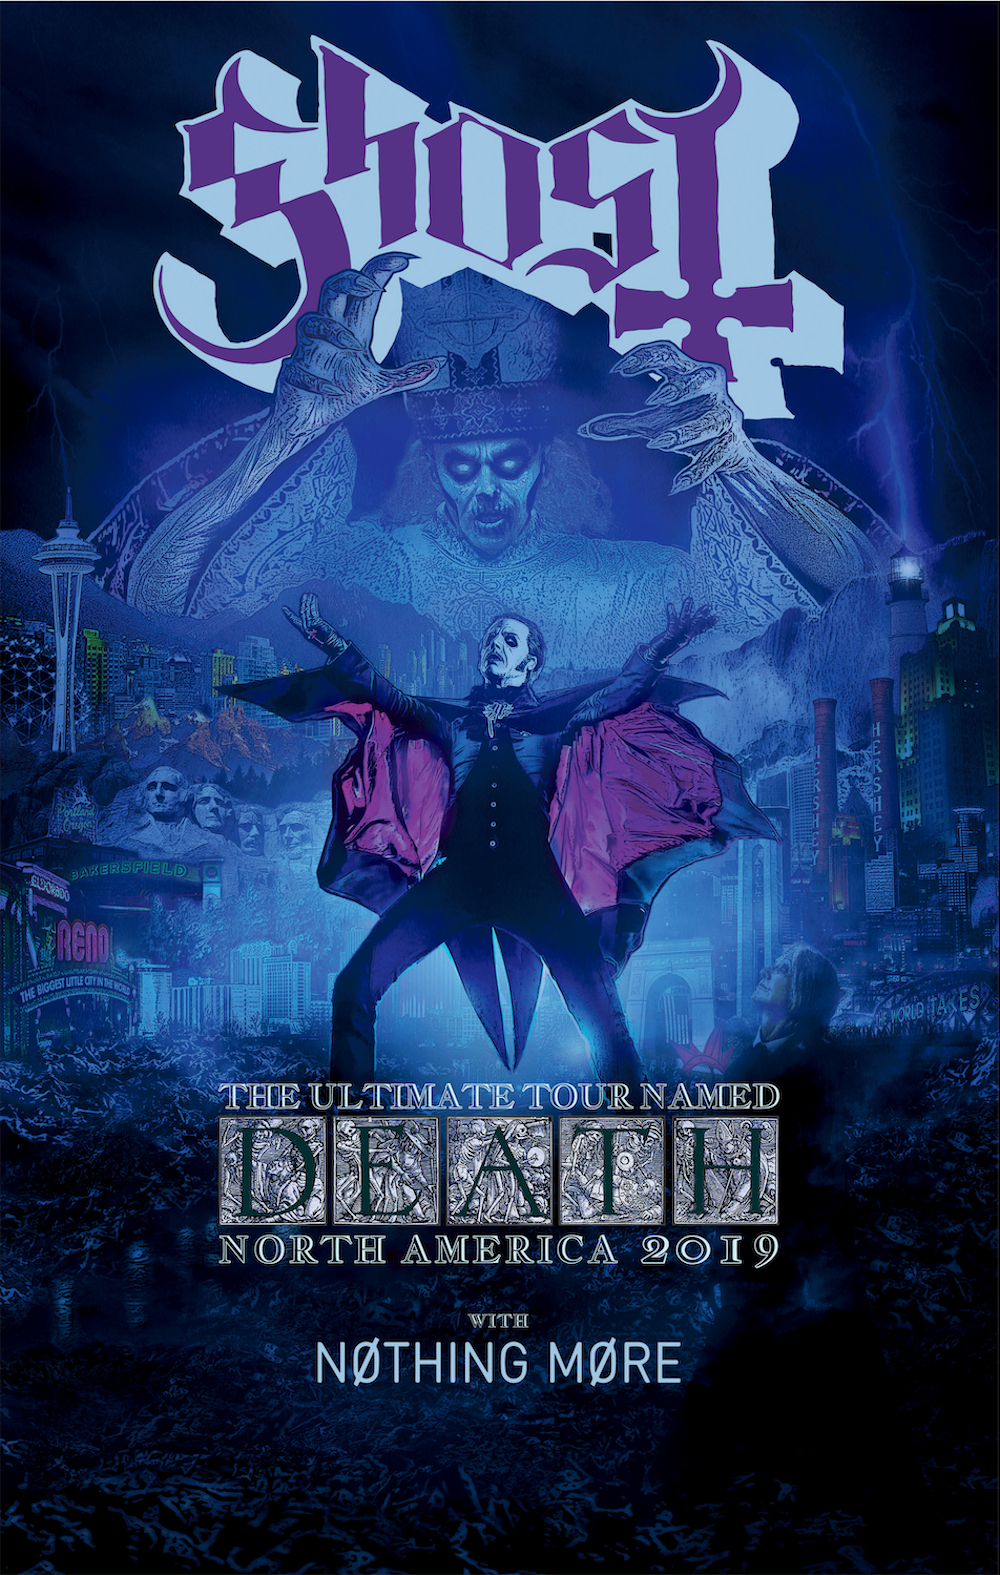 Ghost tour poster fall